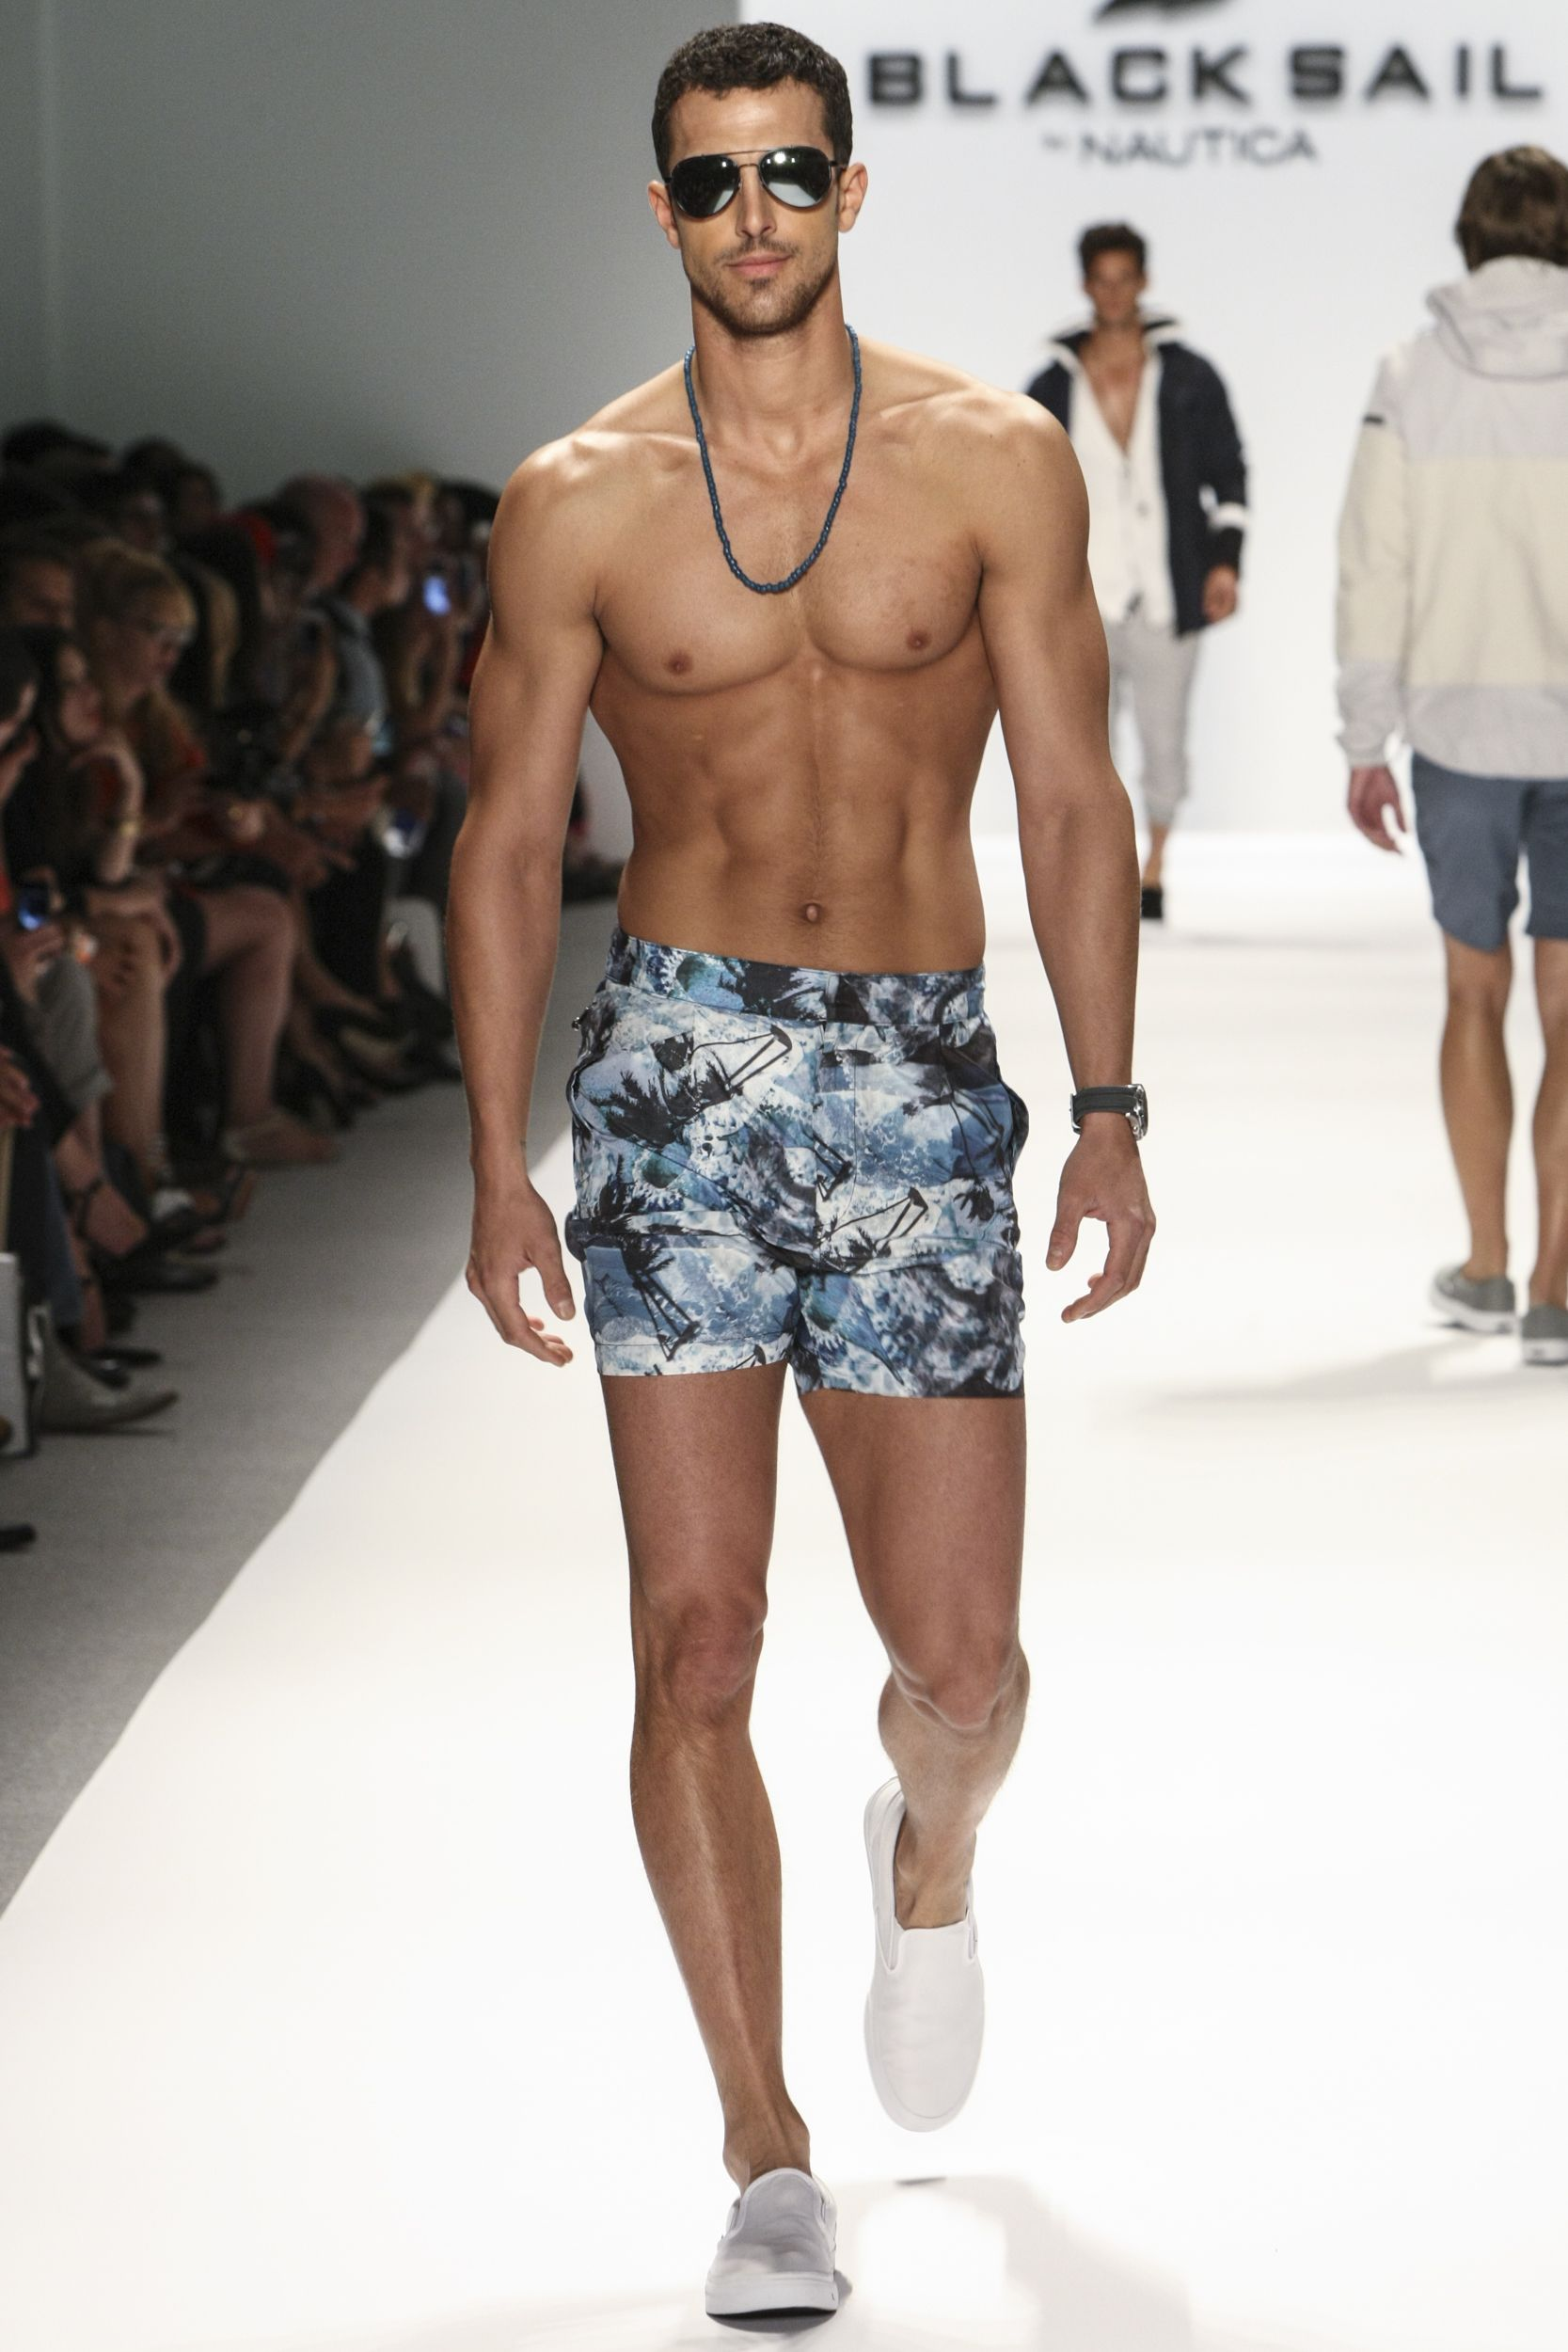 f3e4f739ad7 Nautica Men s Spring 2014 Black Sail Collection  MBFW  NYFW ...